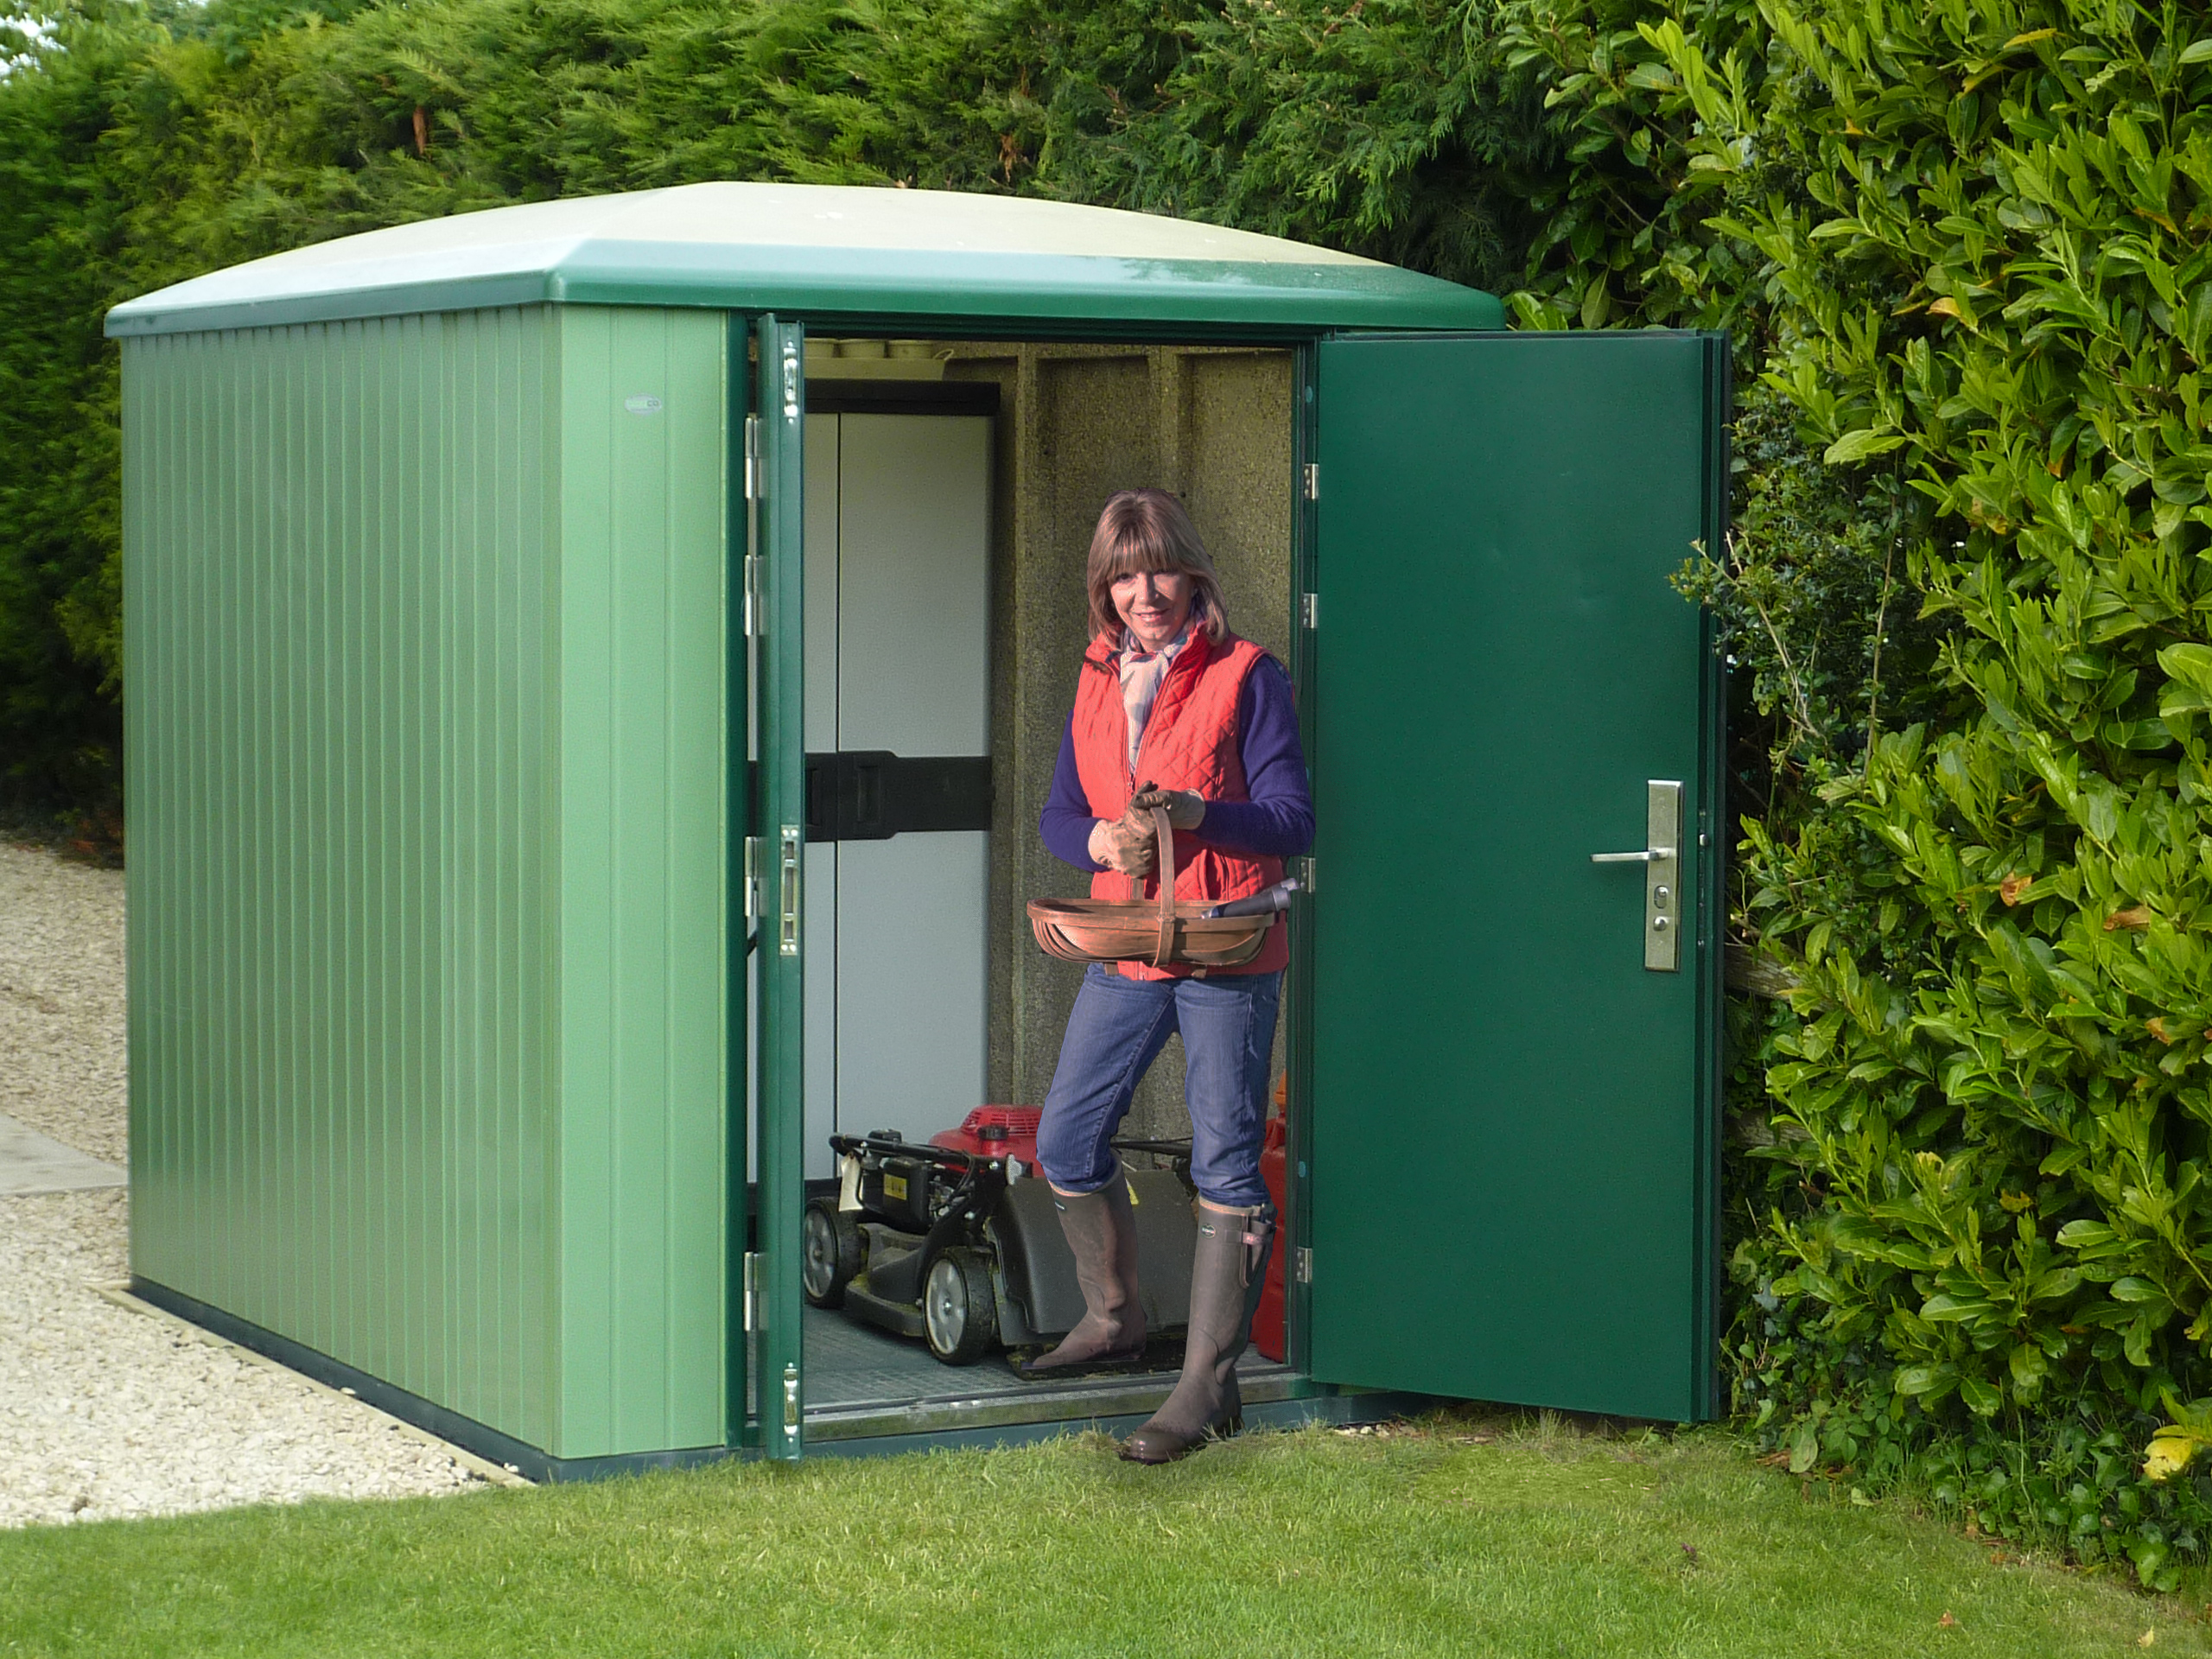 storage x today product free shipping a galvanized garden steel shed home sheds buy arrow overstock woodbridge